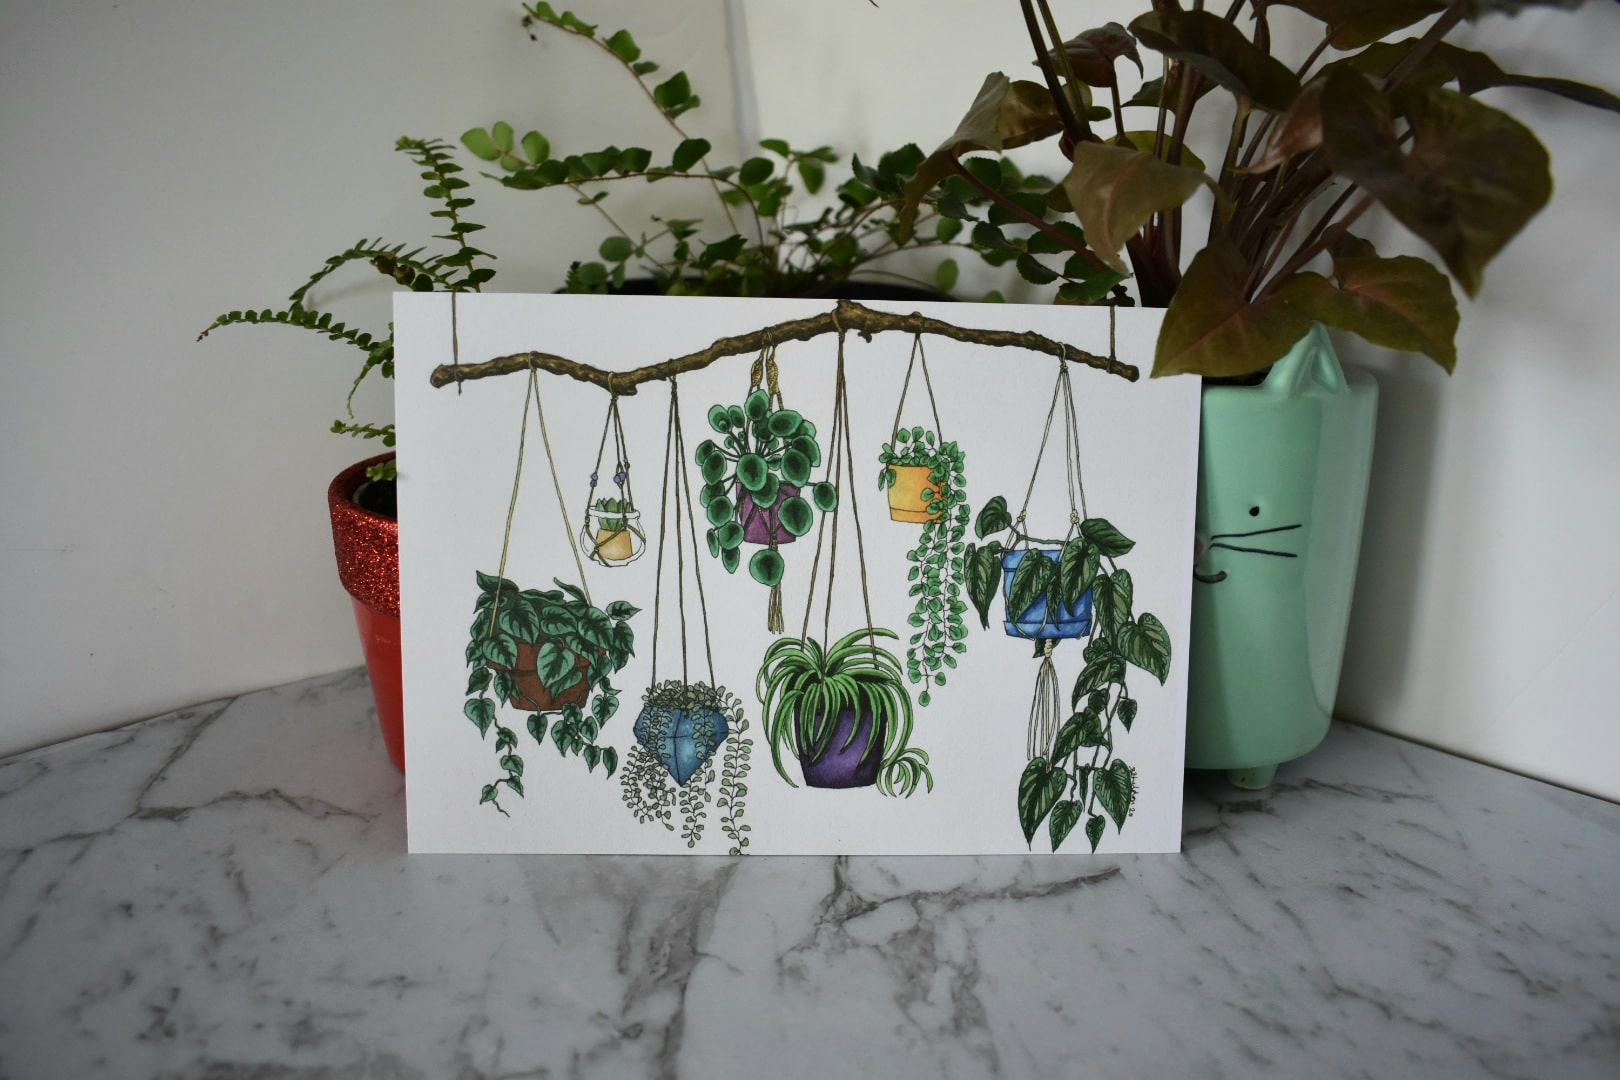 'Hanging Plants' A5 Art Print Botanical Collection Sarah Sheldon Art By A Vibrant Nest